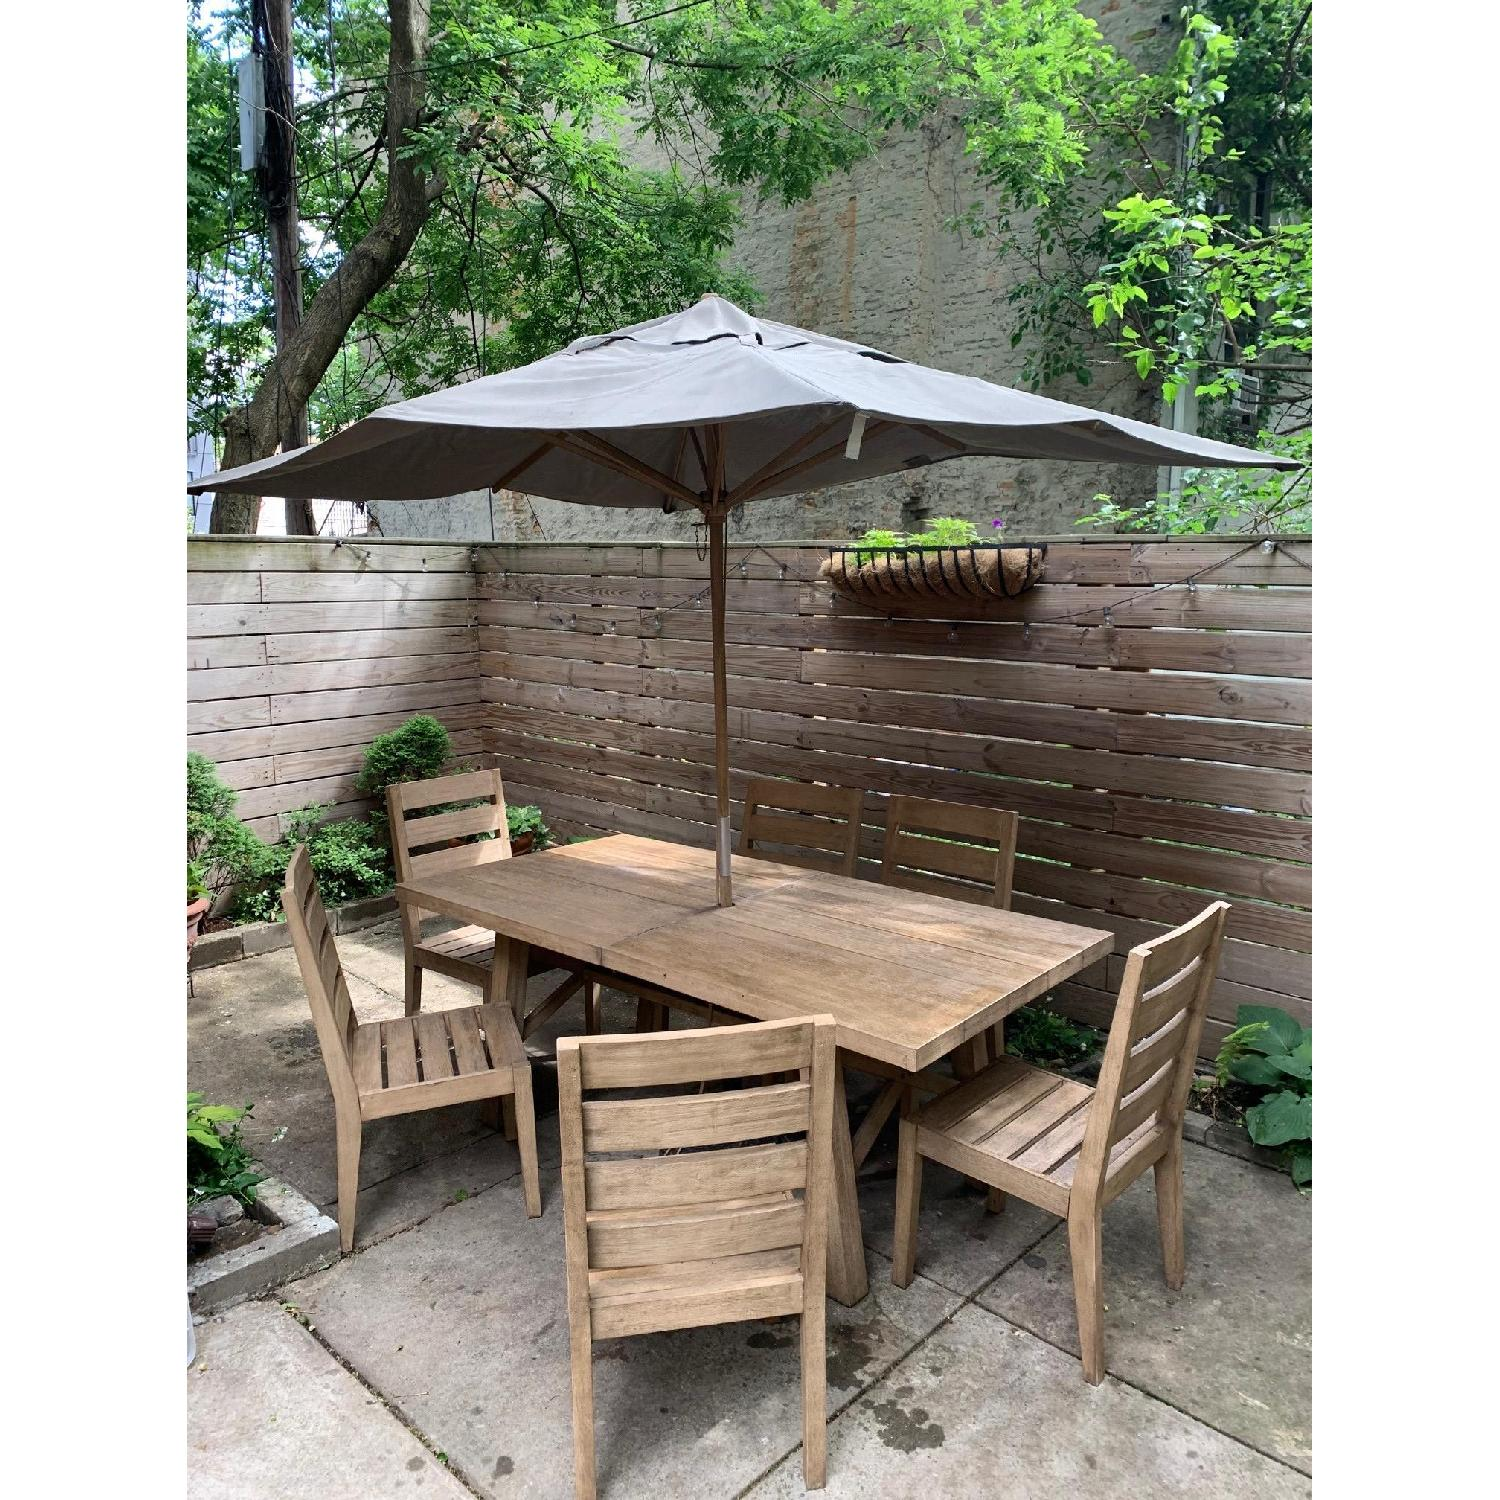 West Elm Extendable Outdoor Dining Table w/ 6 Chairs